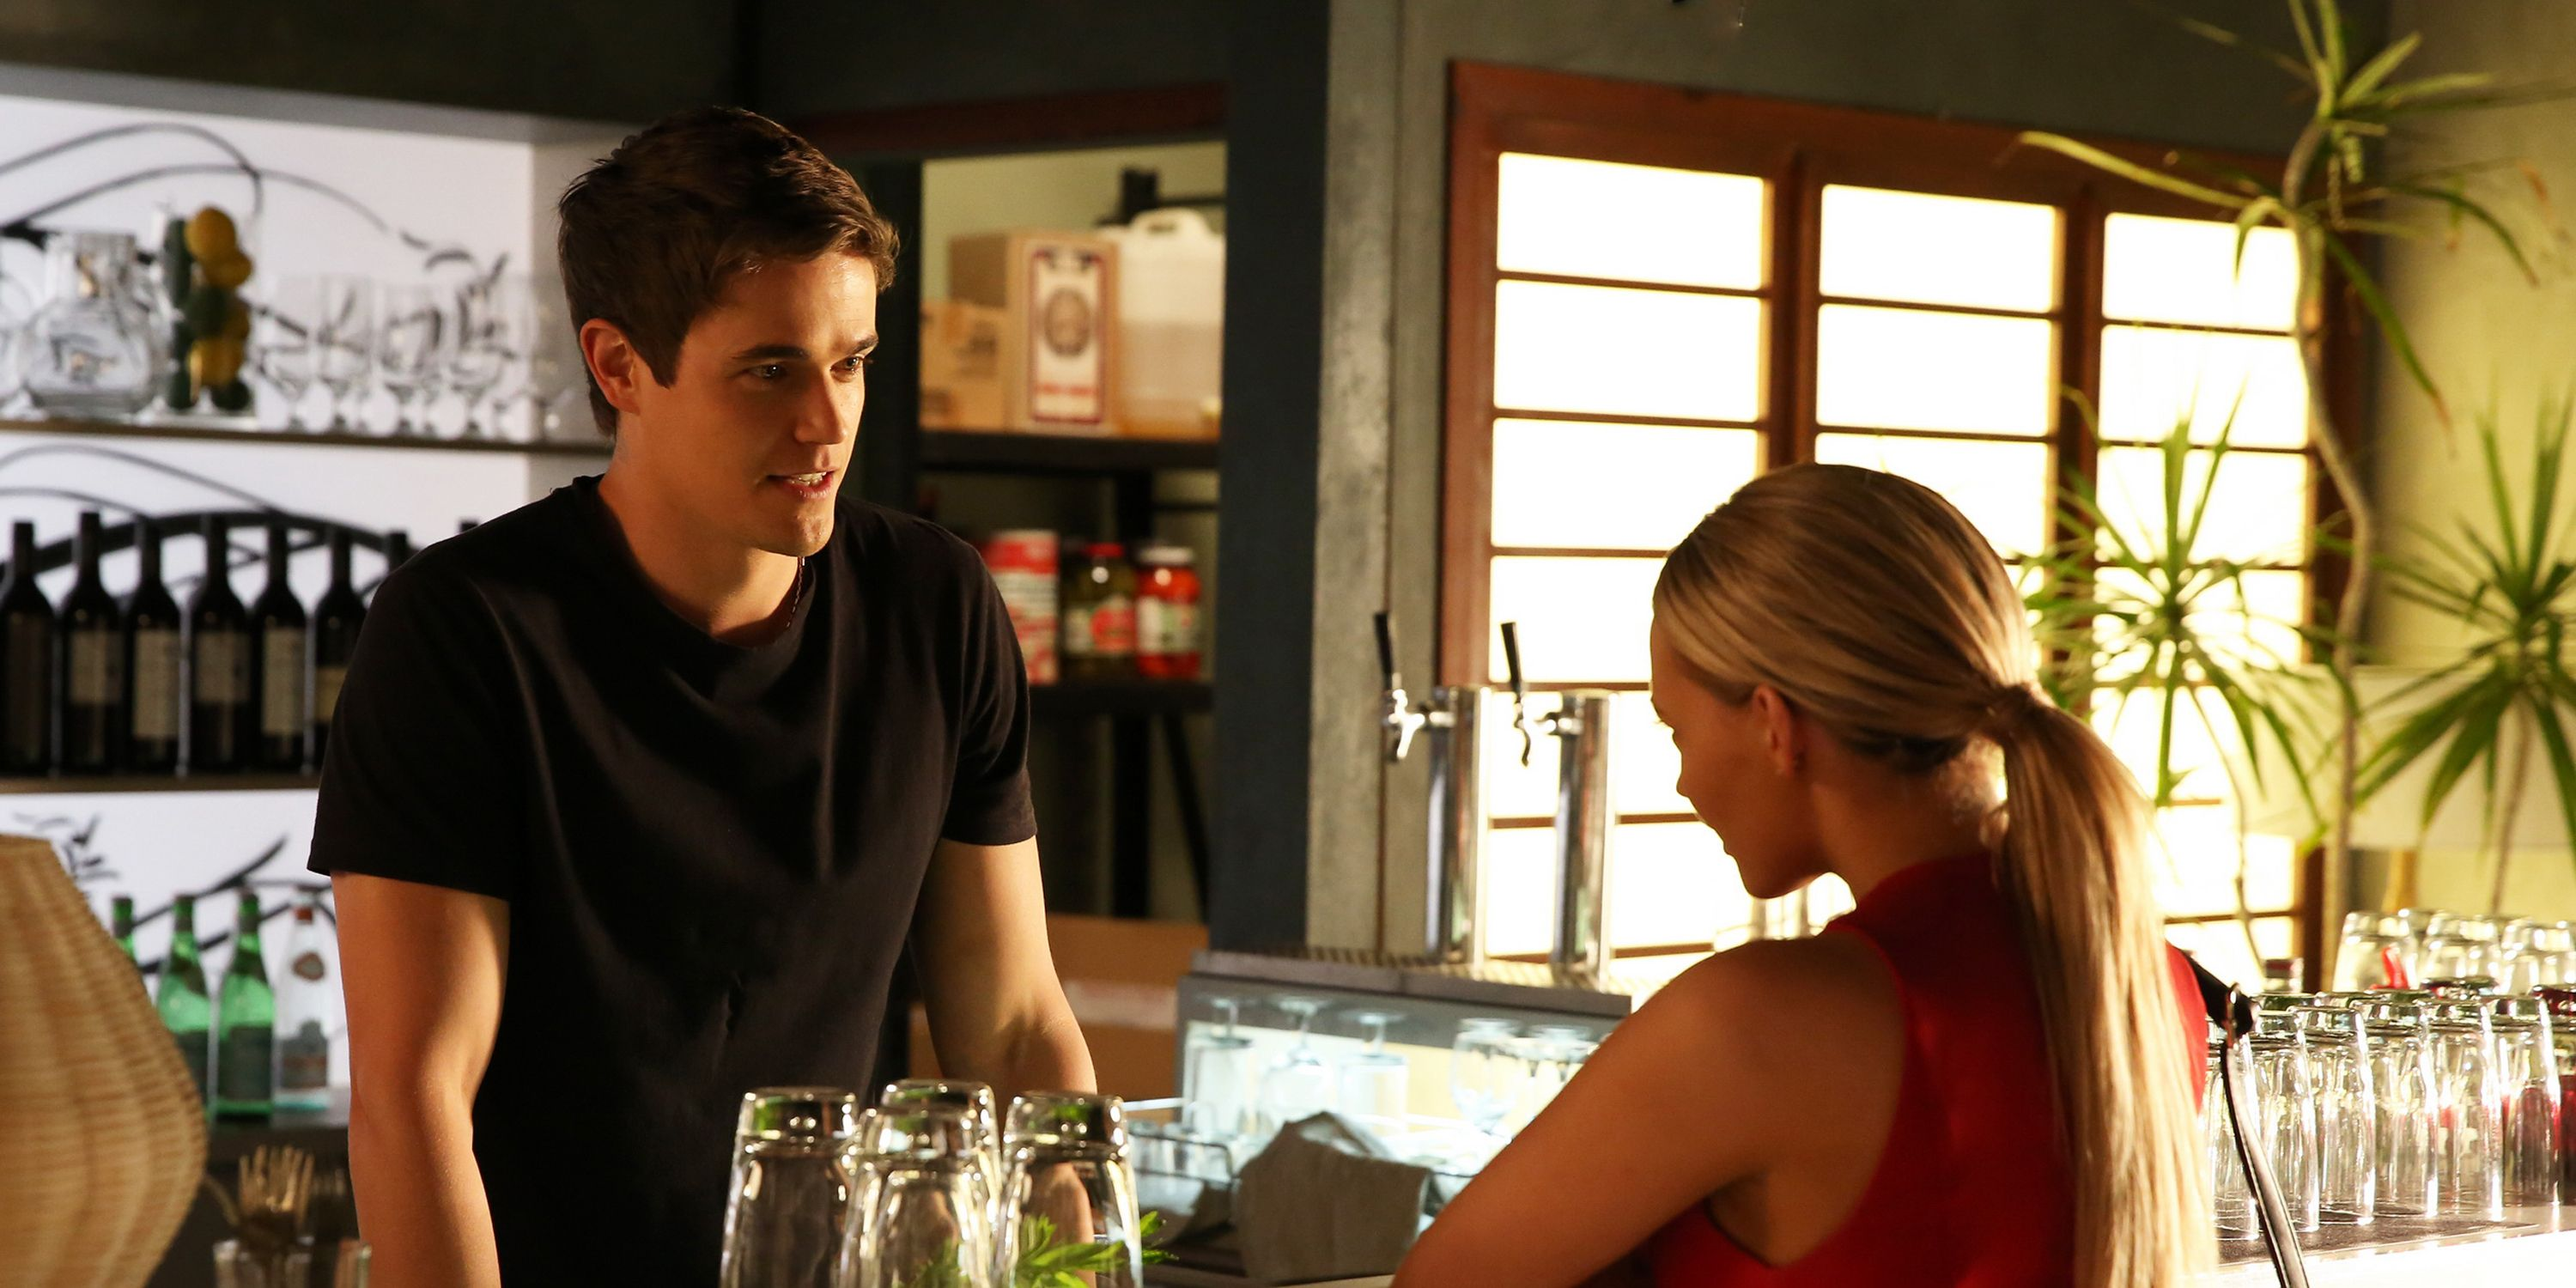 Kyle is swayed and agrees to have a drink with Isla after his shift. ​​